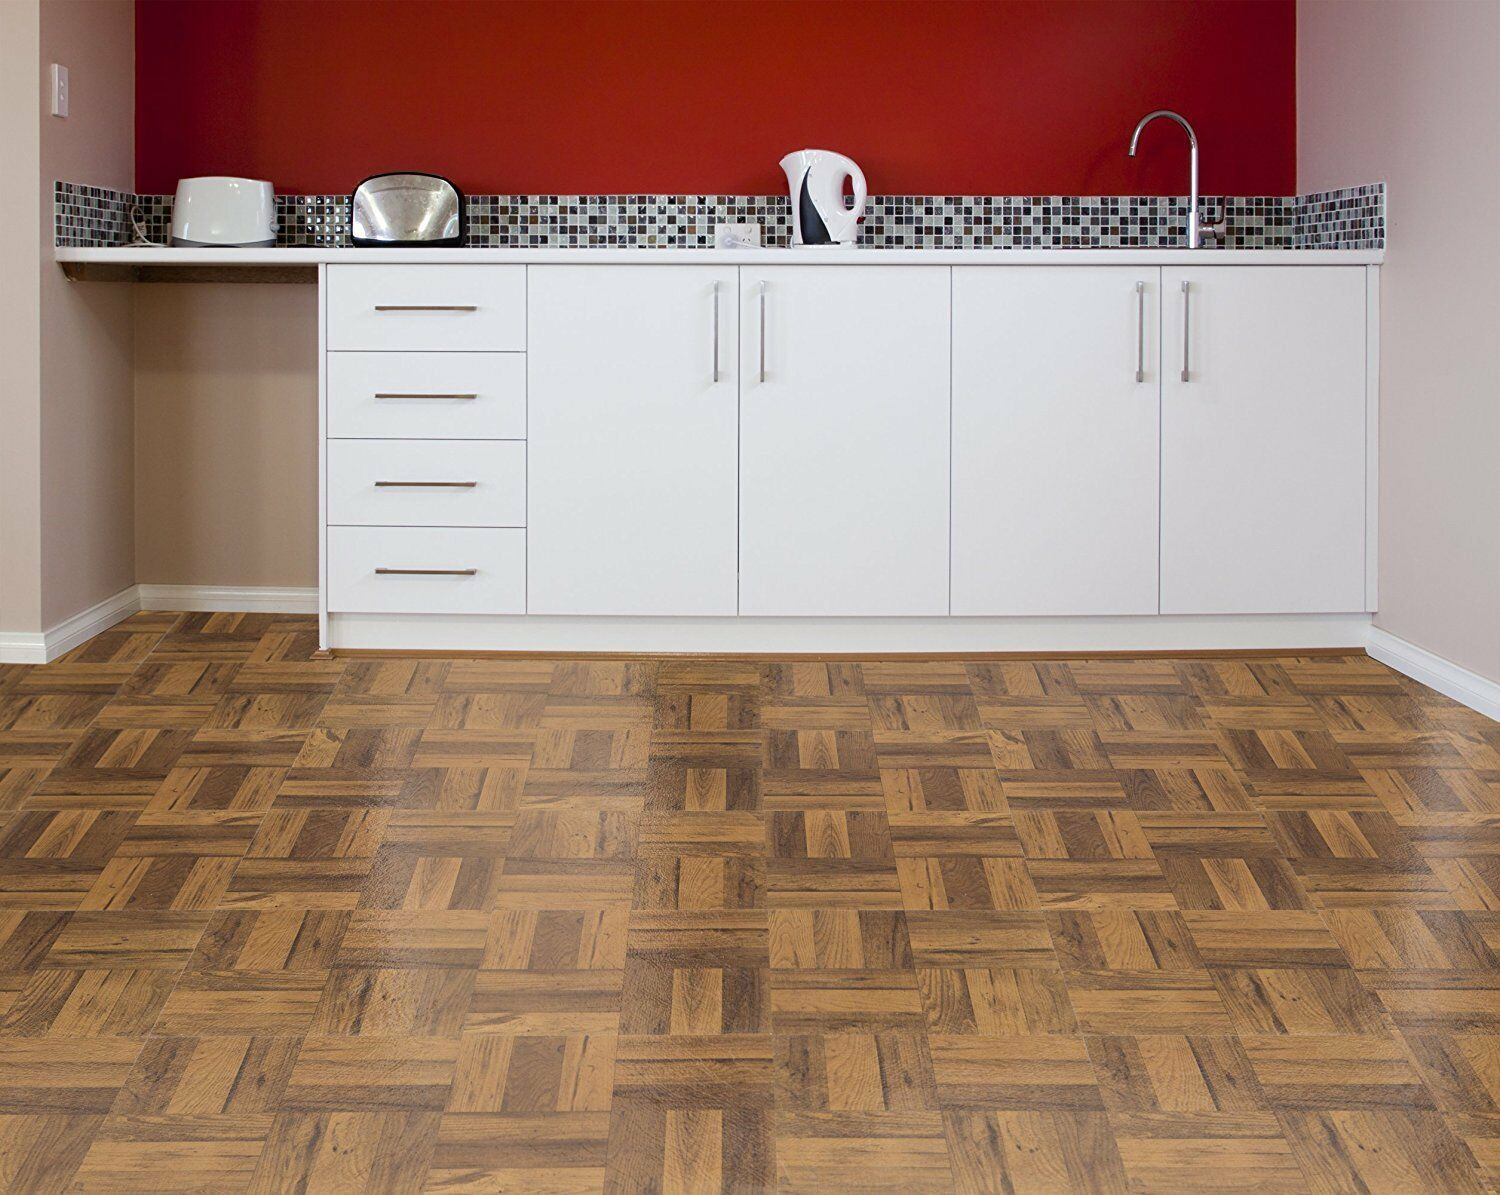 Floor tiles lino images best shower floor tile awesome for Lino that looks like laminate flooring